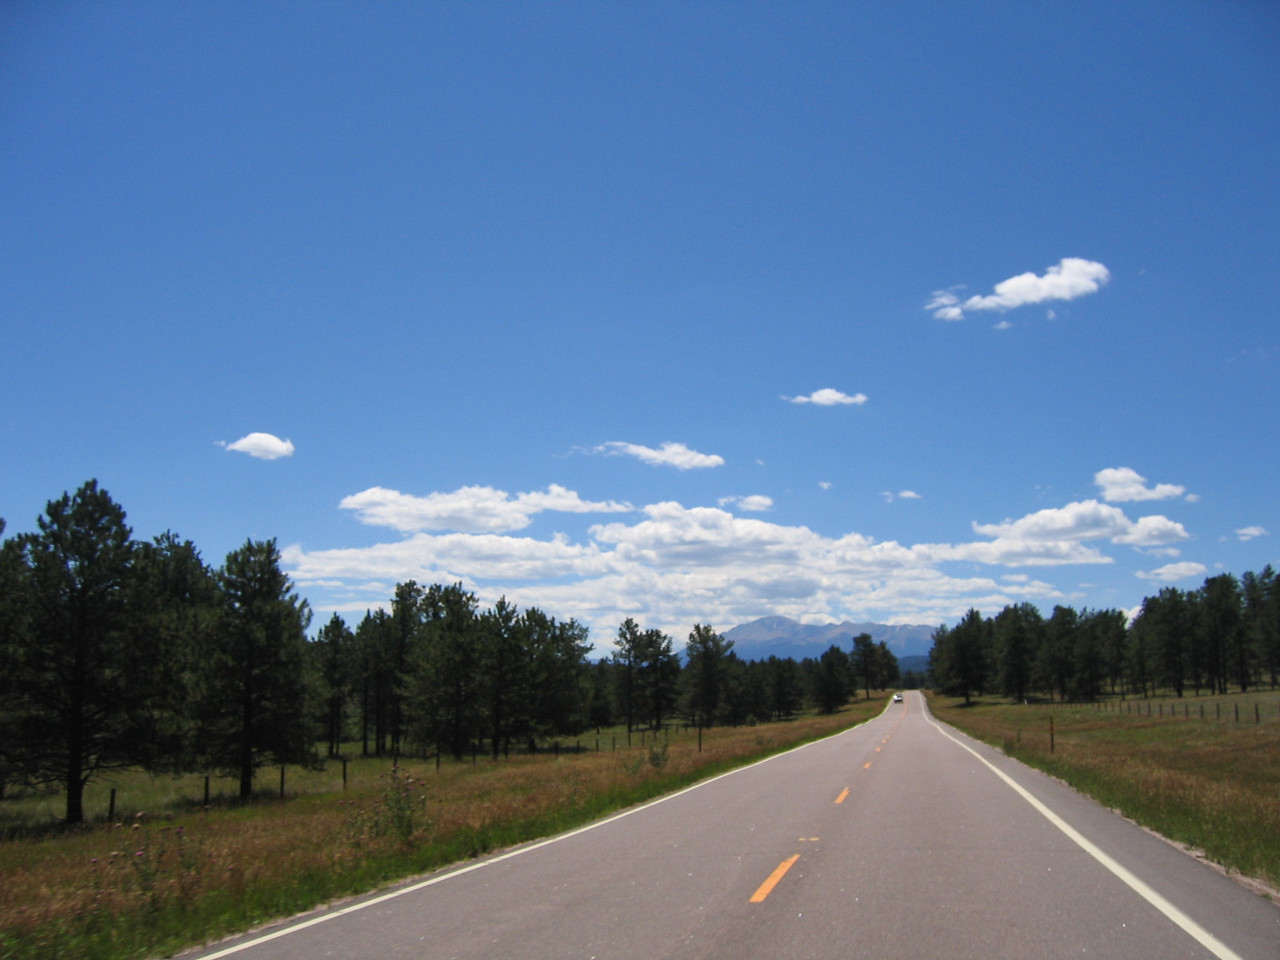 I really enjoy the ride from Pine Junction to Woodland Park.  It is a classic motorcycle road.  The second checkpoint is at a scenic overlook just south of Buffalo Creek.  We stop to pick-up our lunch tickets, and contineu our way.  Jeff takes a longer break here, so we part ways at this point.